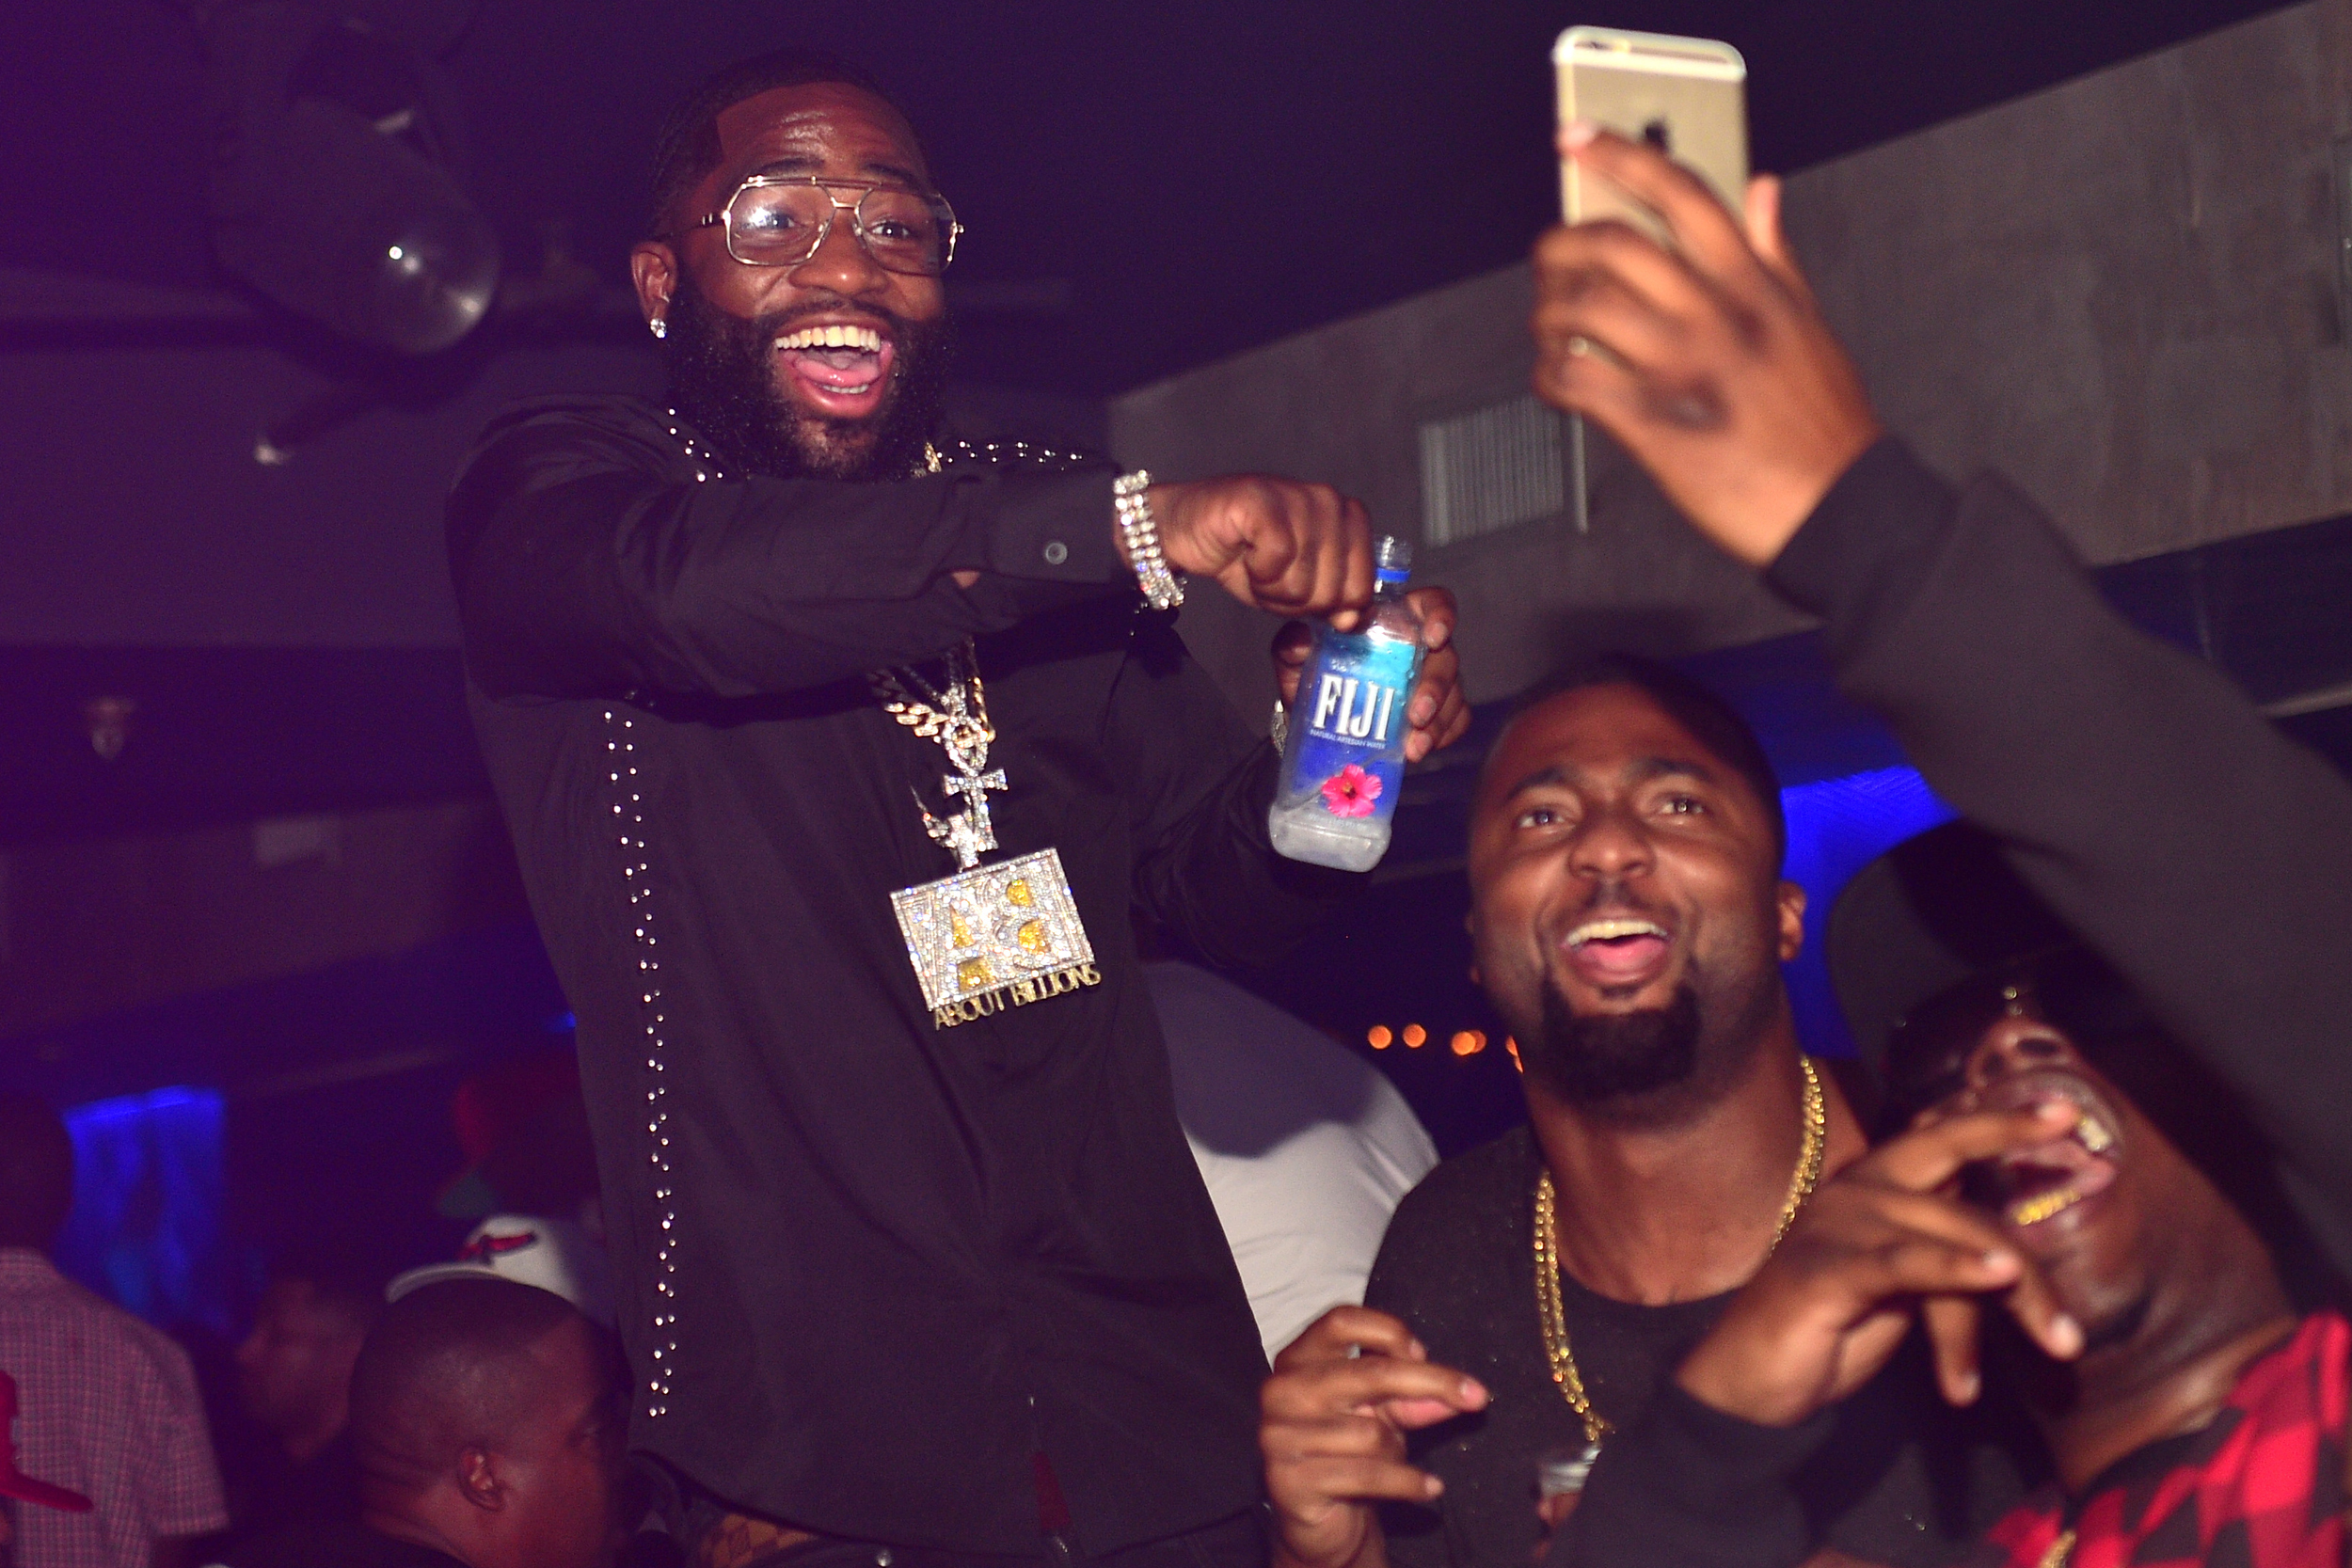 Adrien Broner attends BET Hip Hop Awards AfterParty at Prive on October 9, 2015 in Atlanta, Georgia.